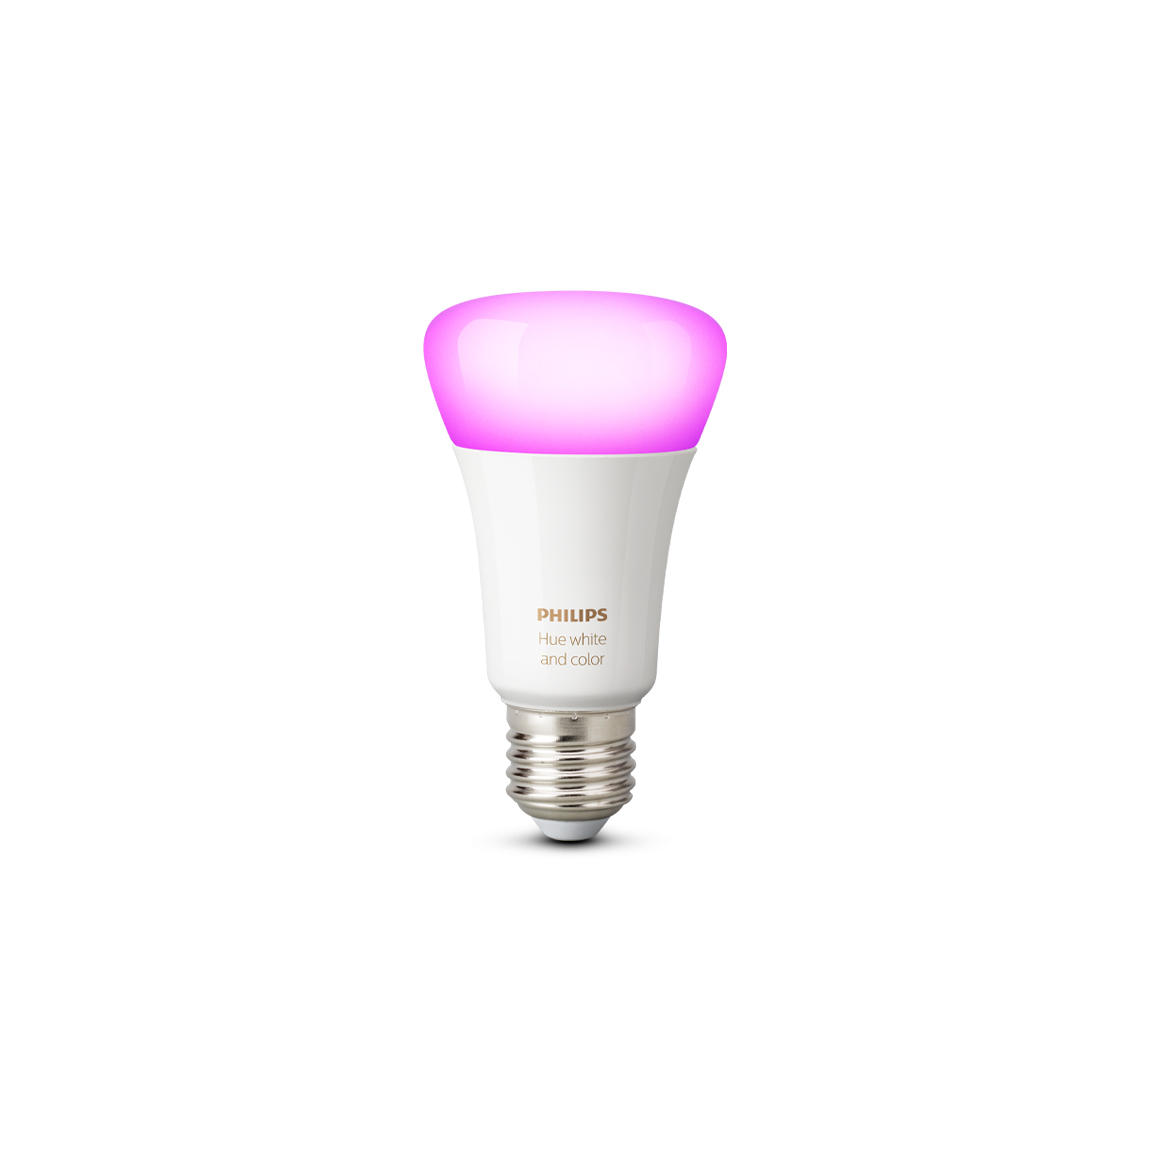 Philips Hue White and Color Ambiance E27 Bluetooth - LED-Lampe - Weiß